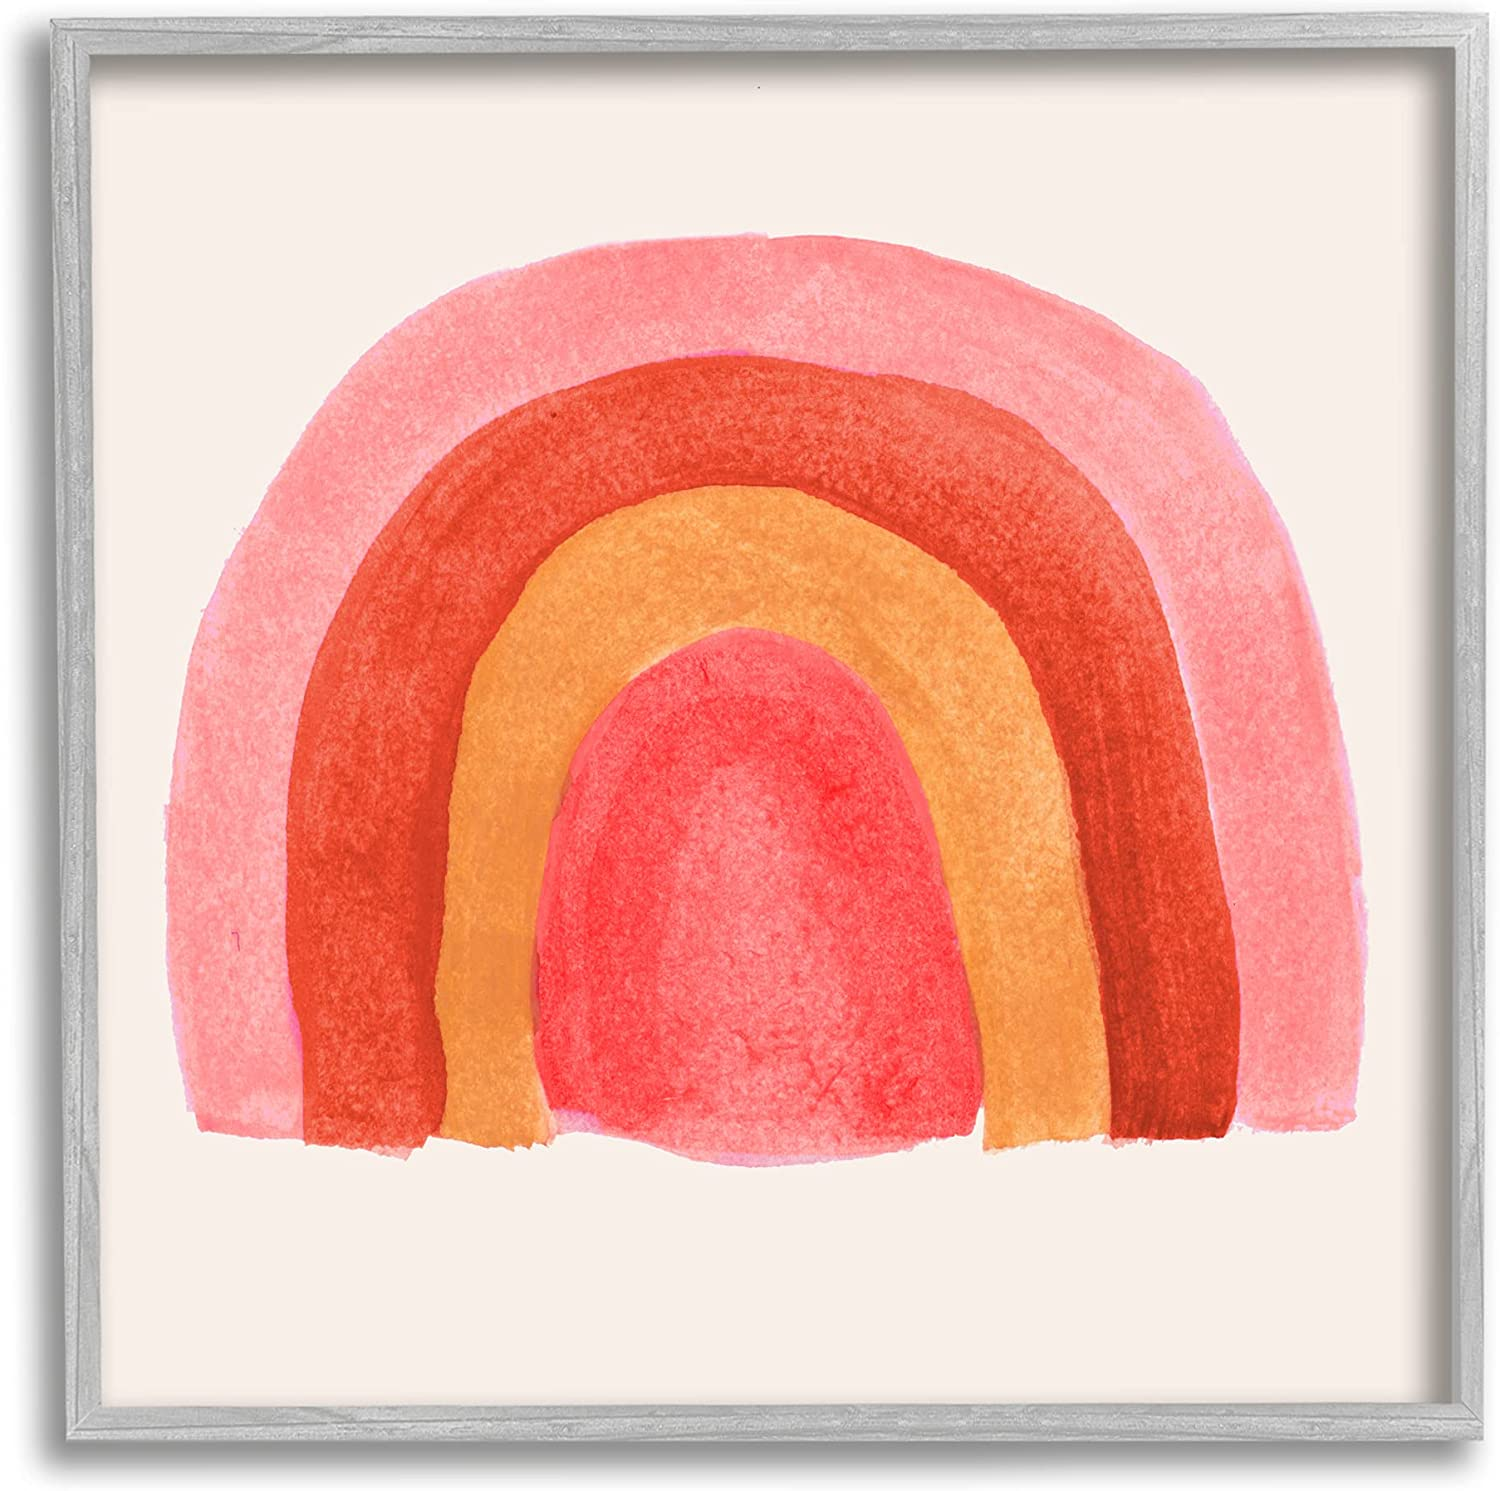 Weekly update Stupell Industries Bold Red Credence Pink Arches De Layered Rainbow Four